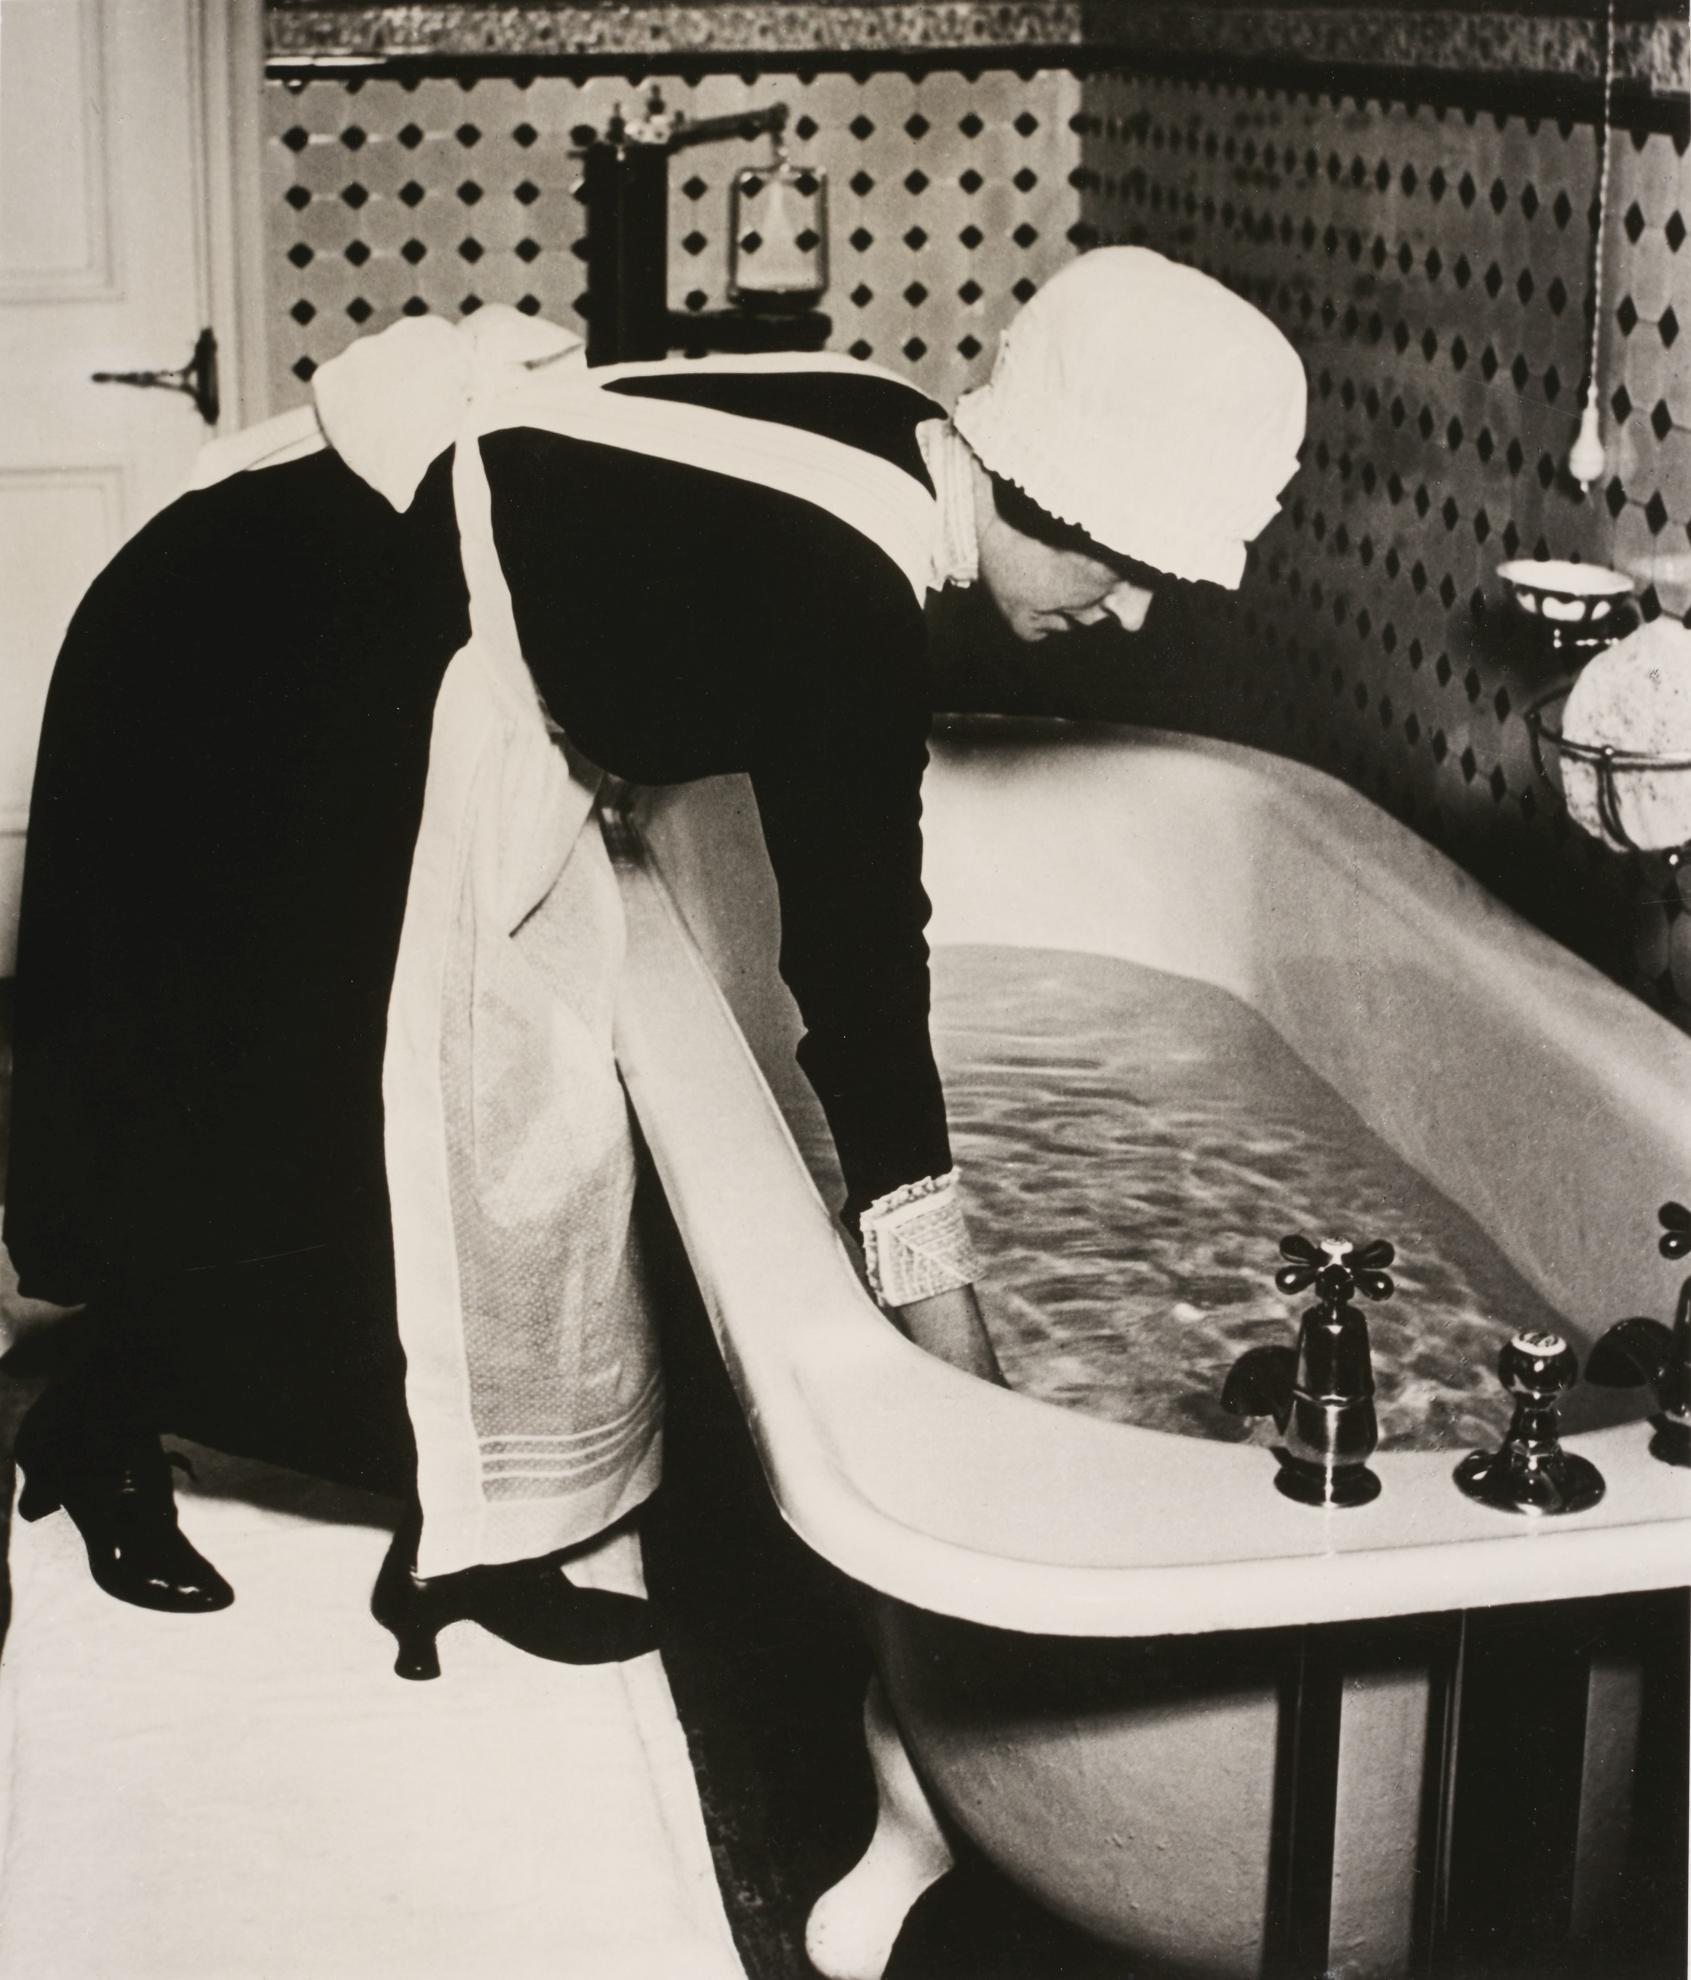 Bill Brandt-Parlourmaid Preparing A Bath Before Dinner, 1935-1935